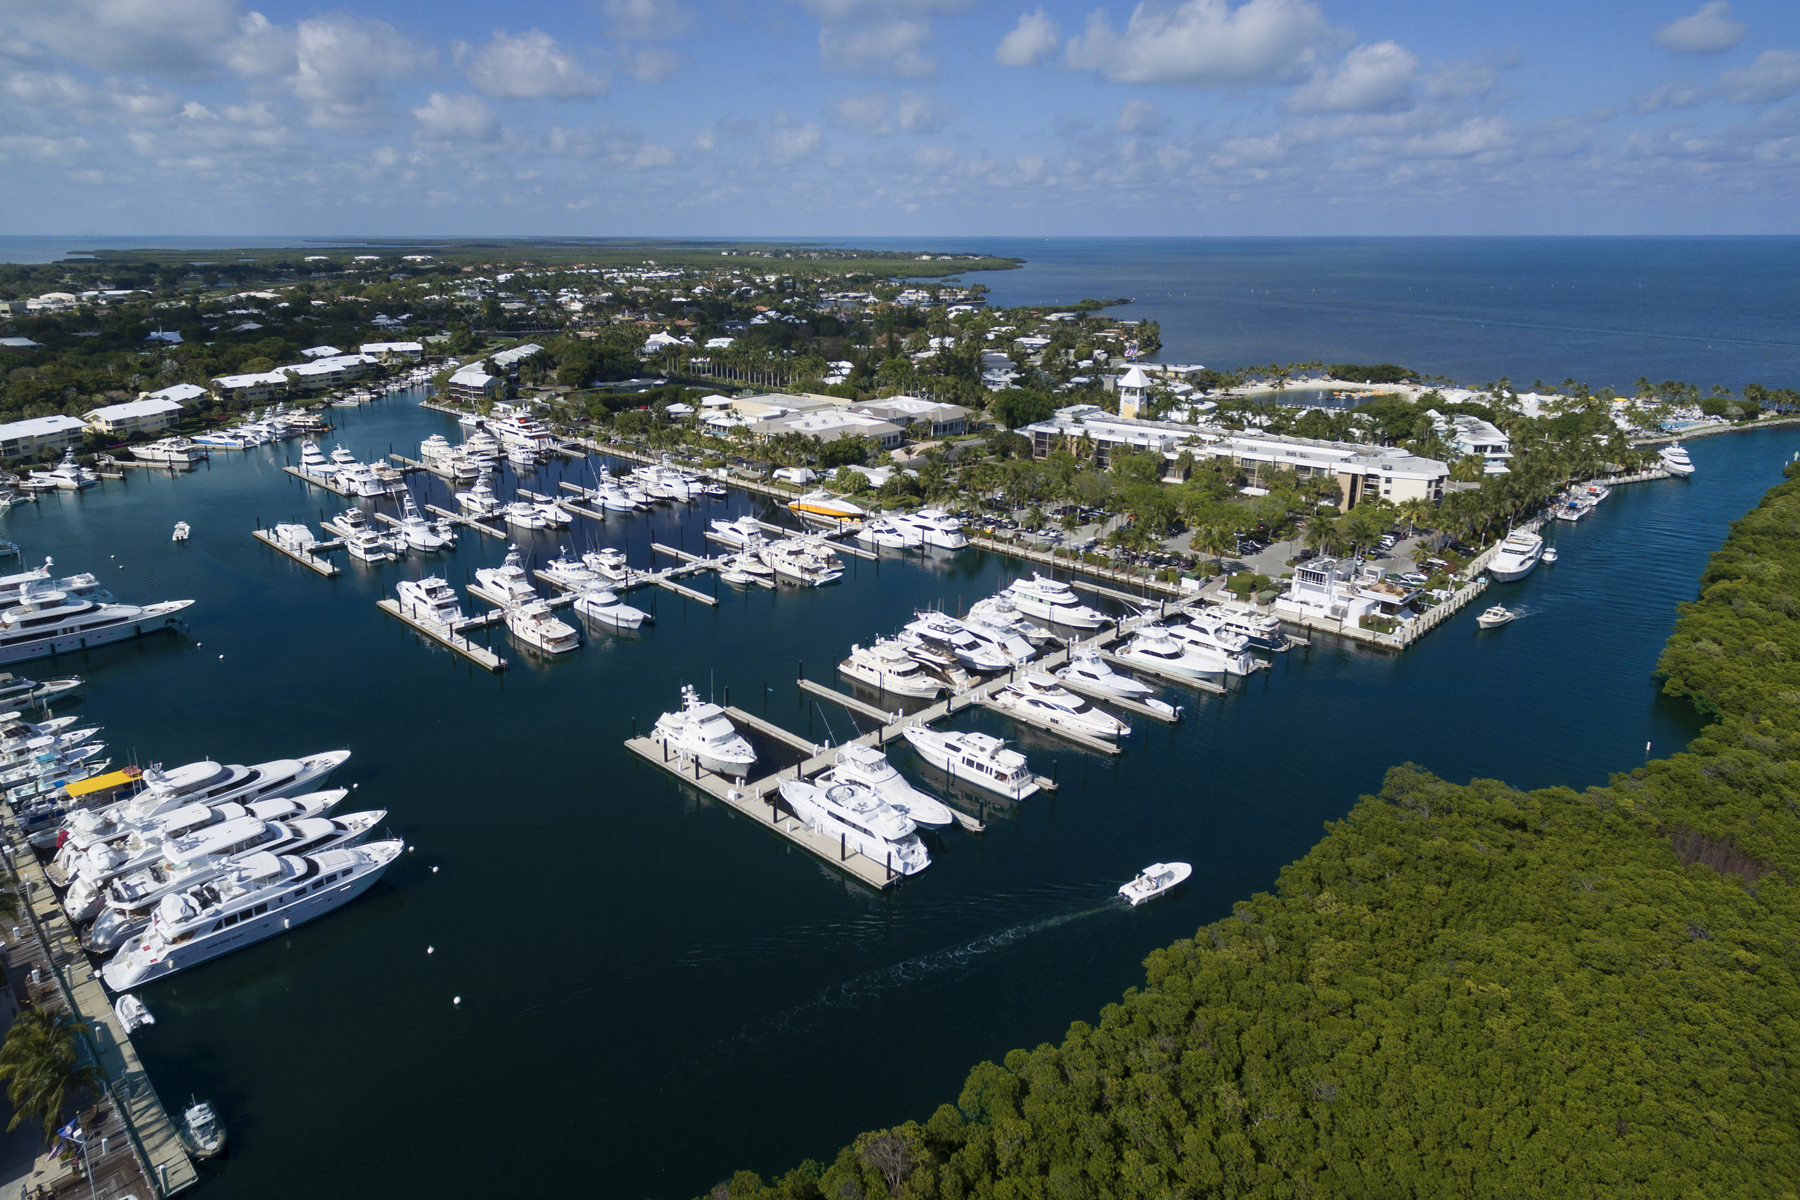 Additional photo for property listing at Ocean Reef Marina Offers Full Yacht Services 201 Ocean Reef Drive, DS-21 Key Largo, Florida 33037 États-Unis